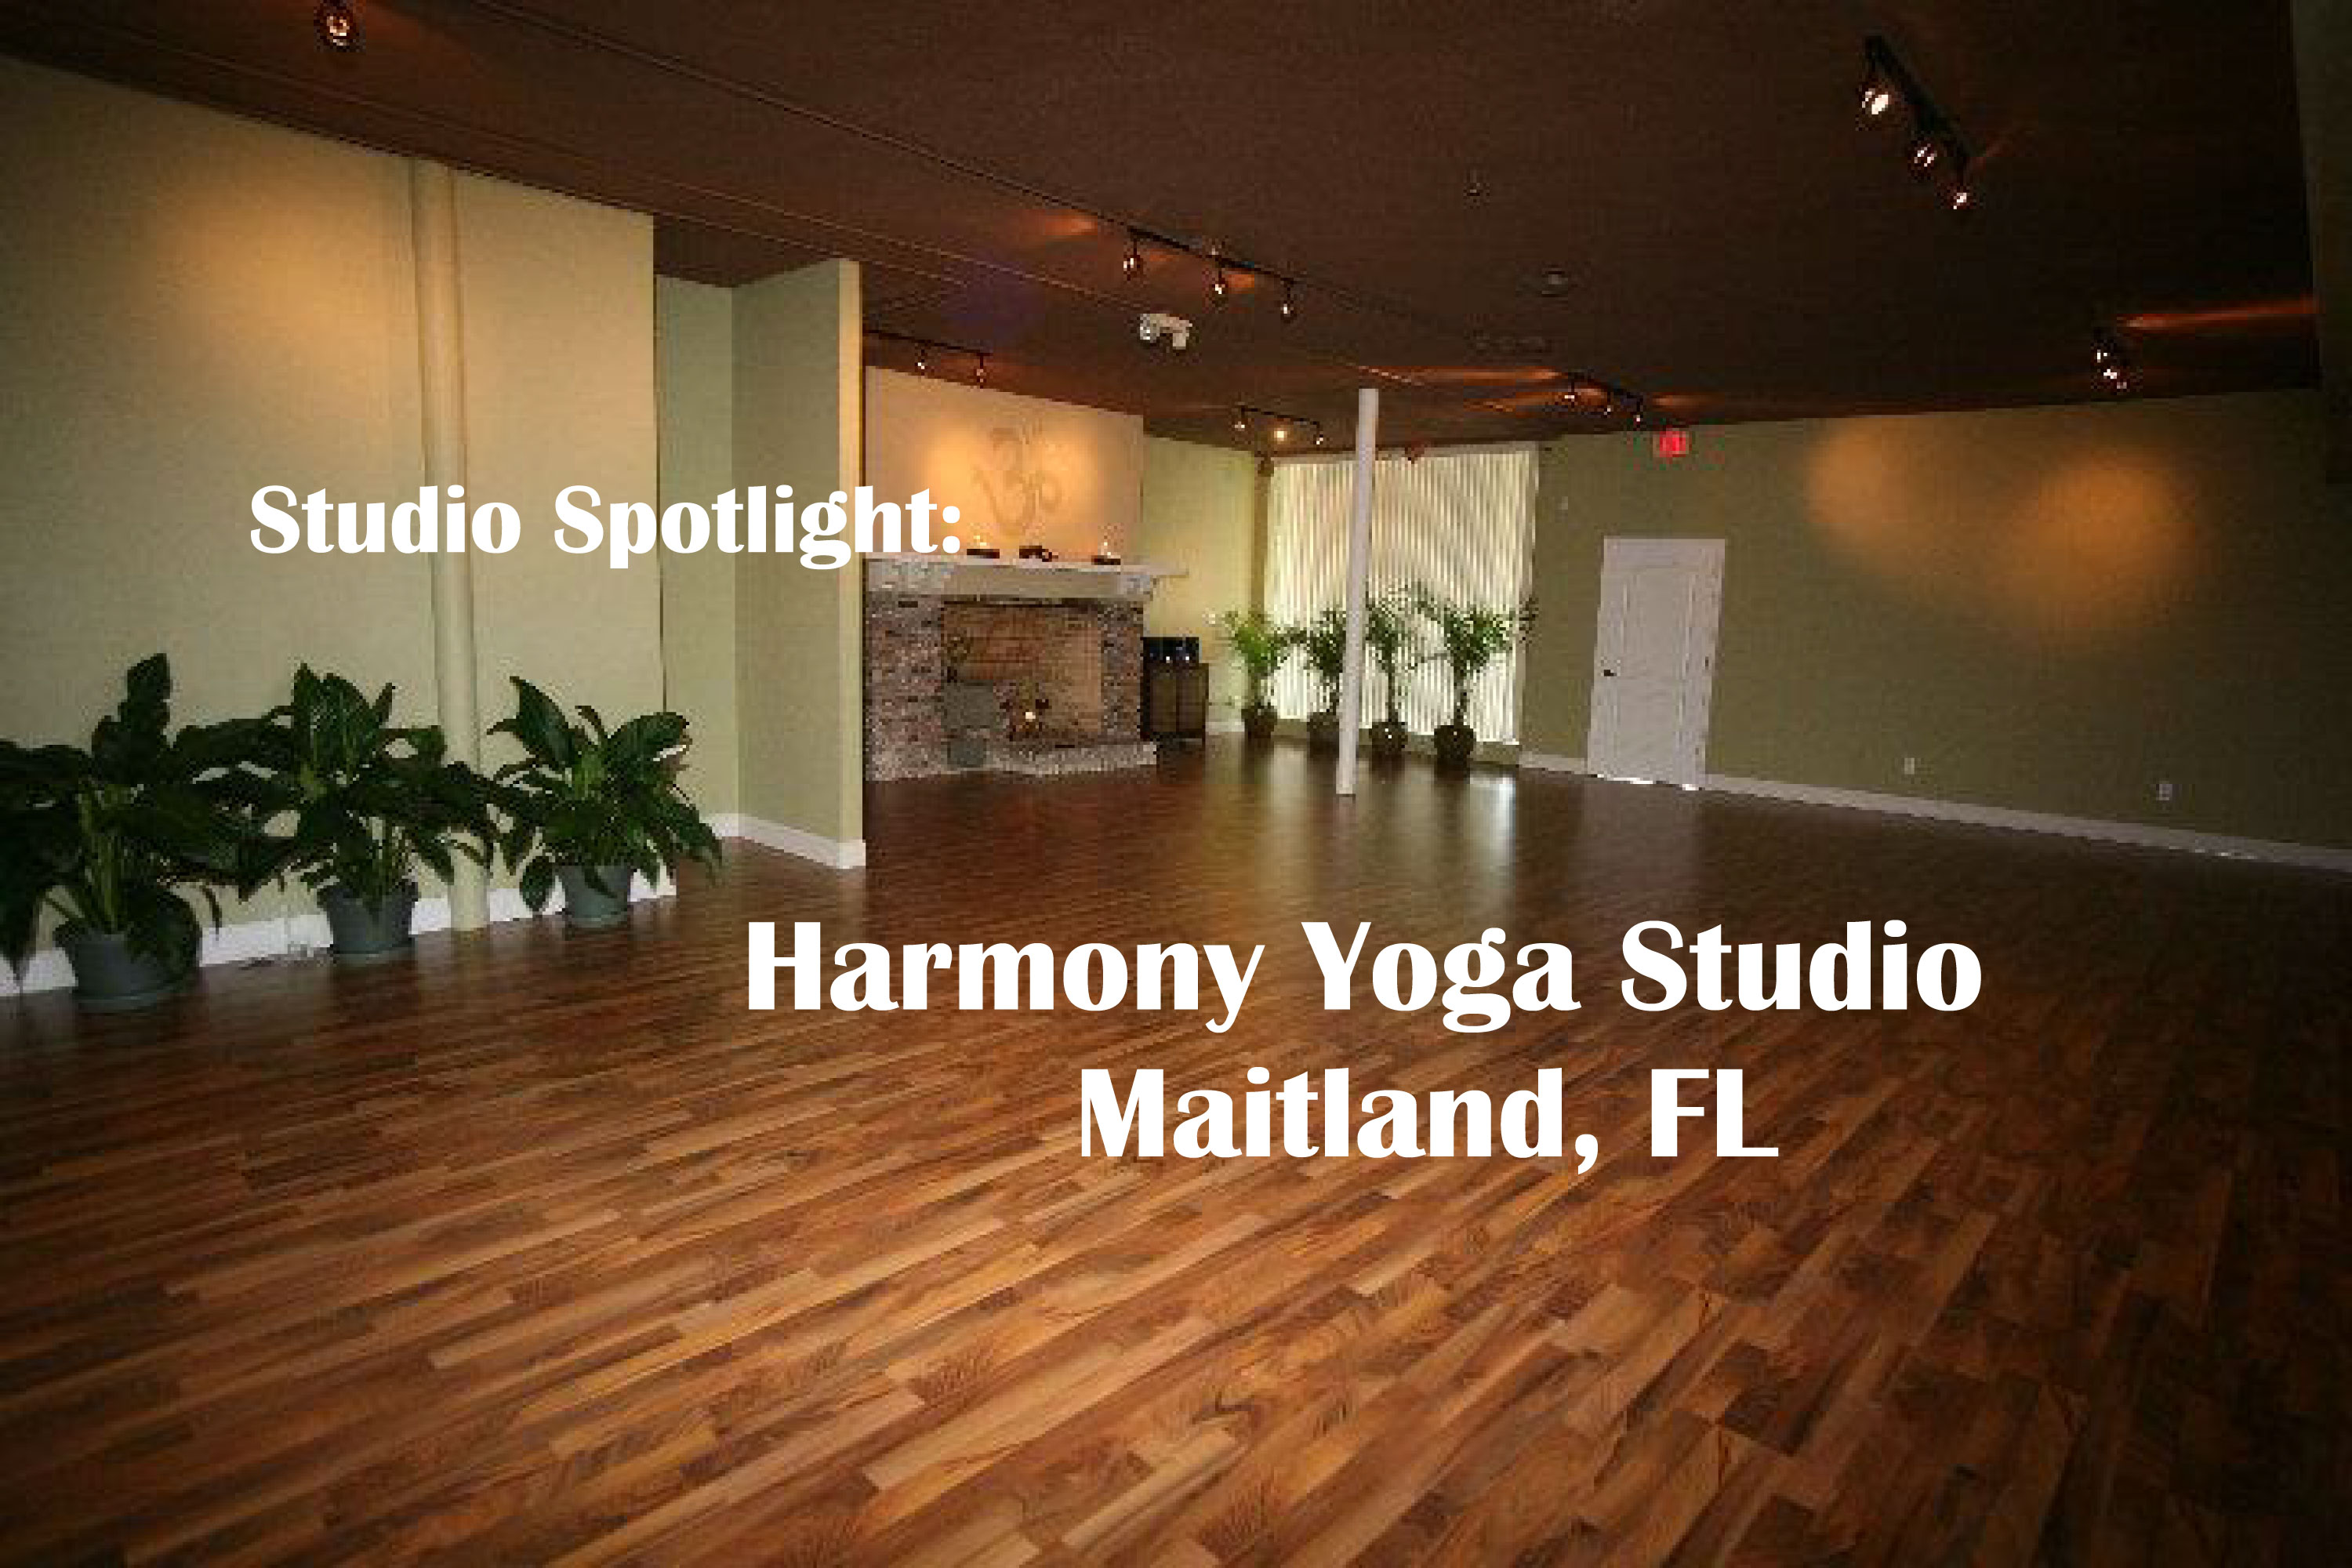 Harmony Yoga Studio: A Space For Love and Healing